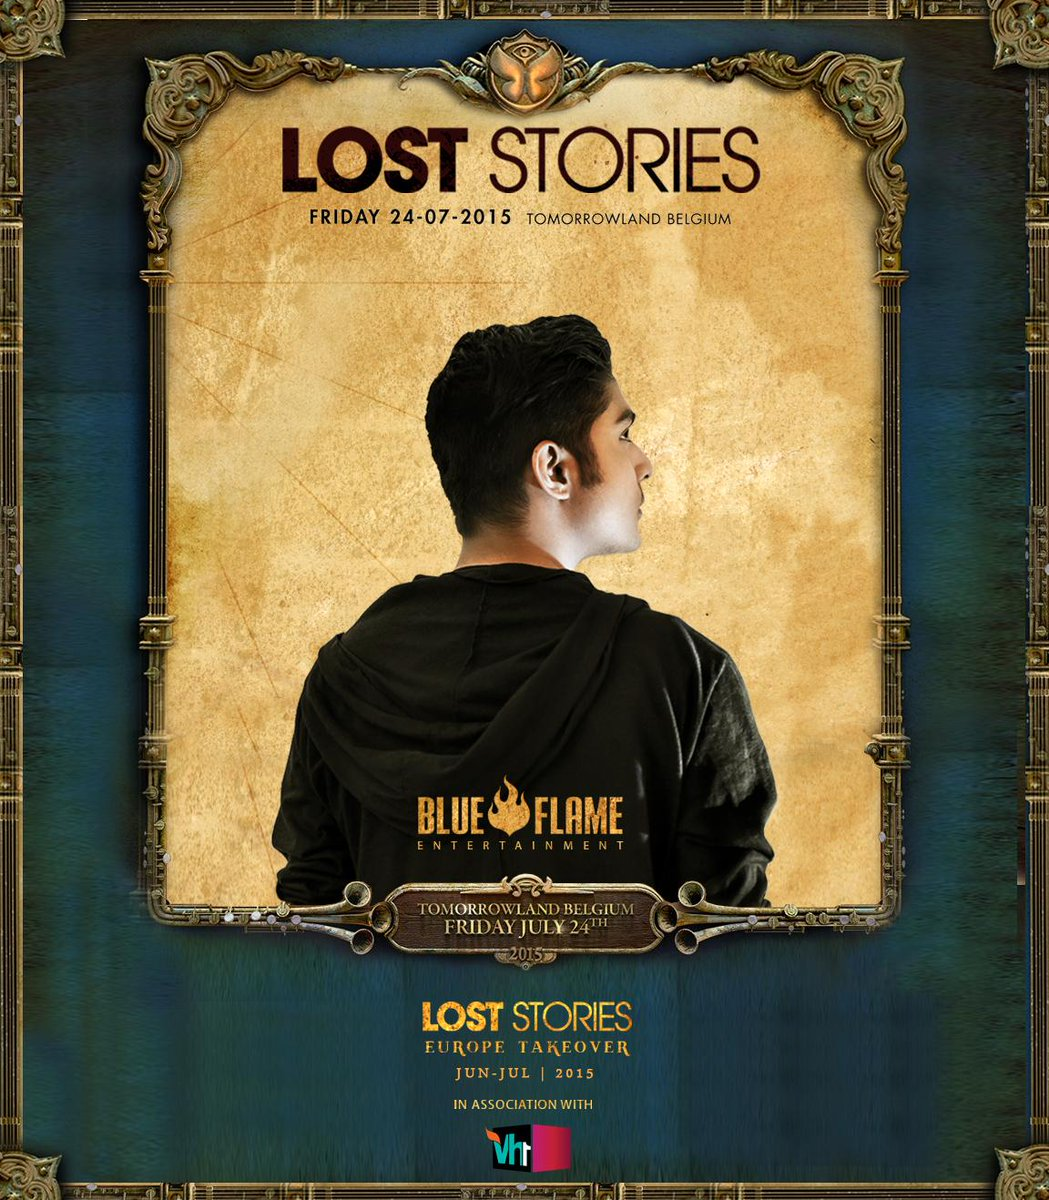 Proud to announce that we'll be representing #INDIA & playing at @tomorrowland on 24th July #LostStoriesTomorrowland http://t.co/5weSRFfeTU